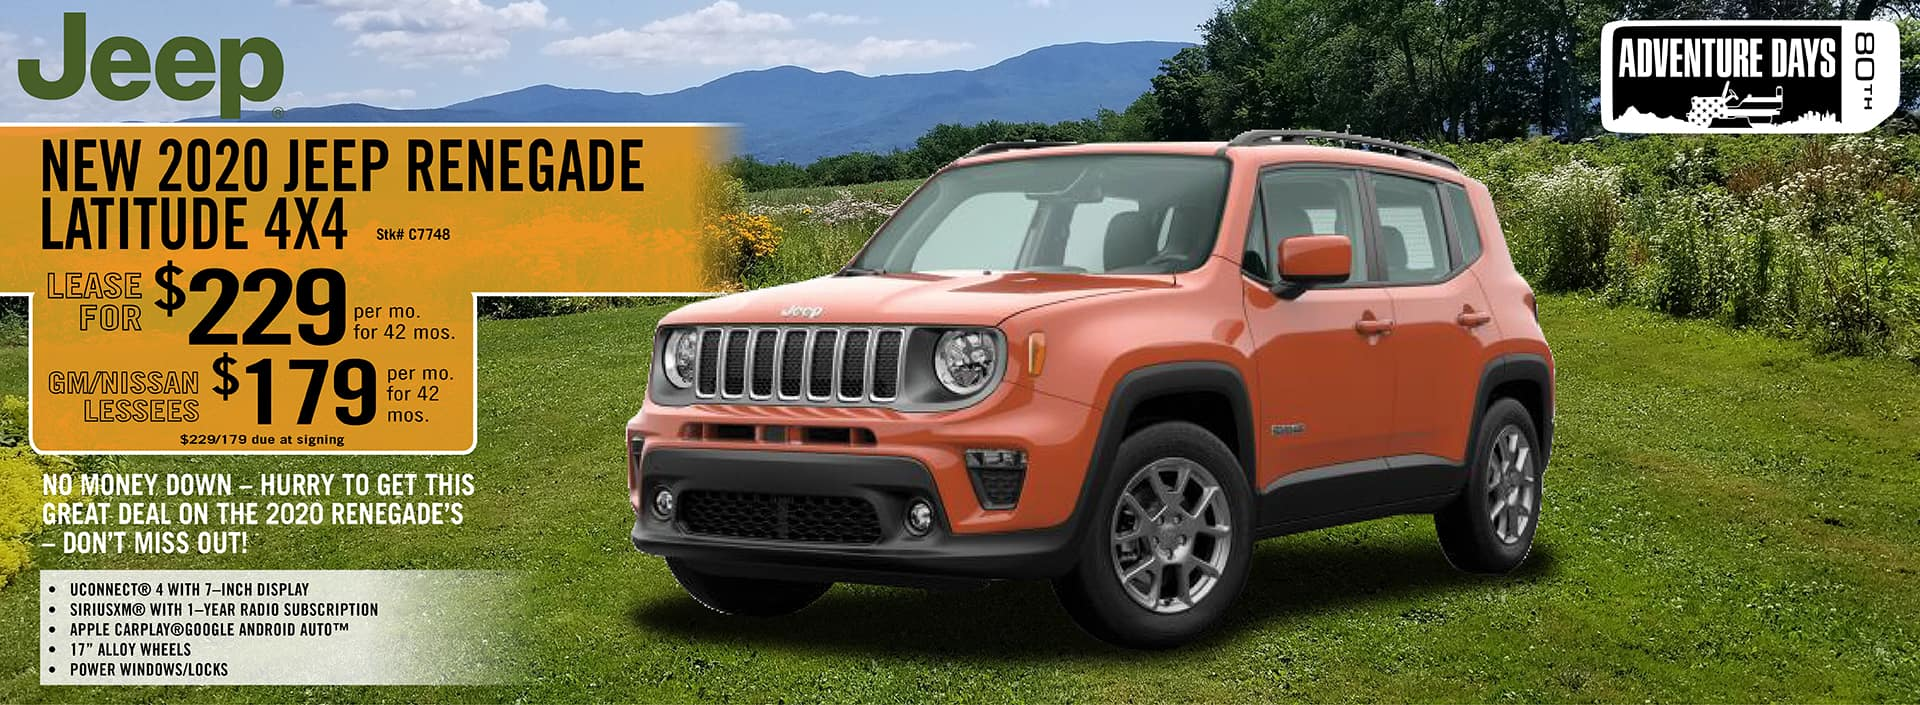 2020 Jeep Renegade Latitude lease deal $229 for 42 months | Barre, VT